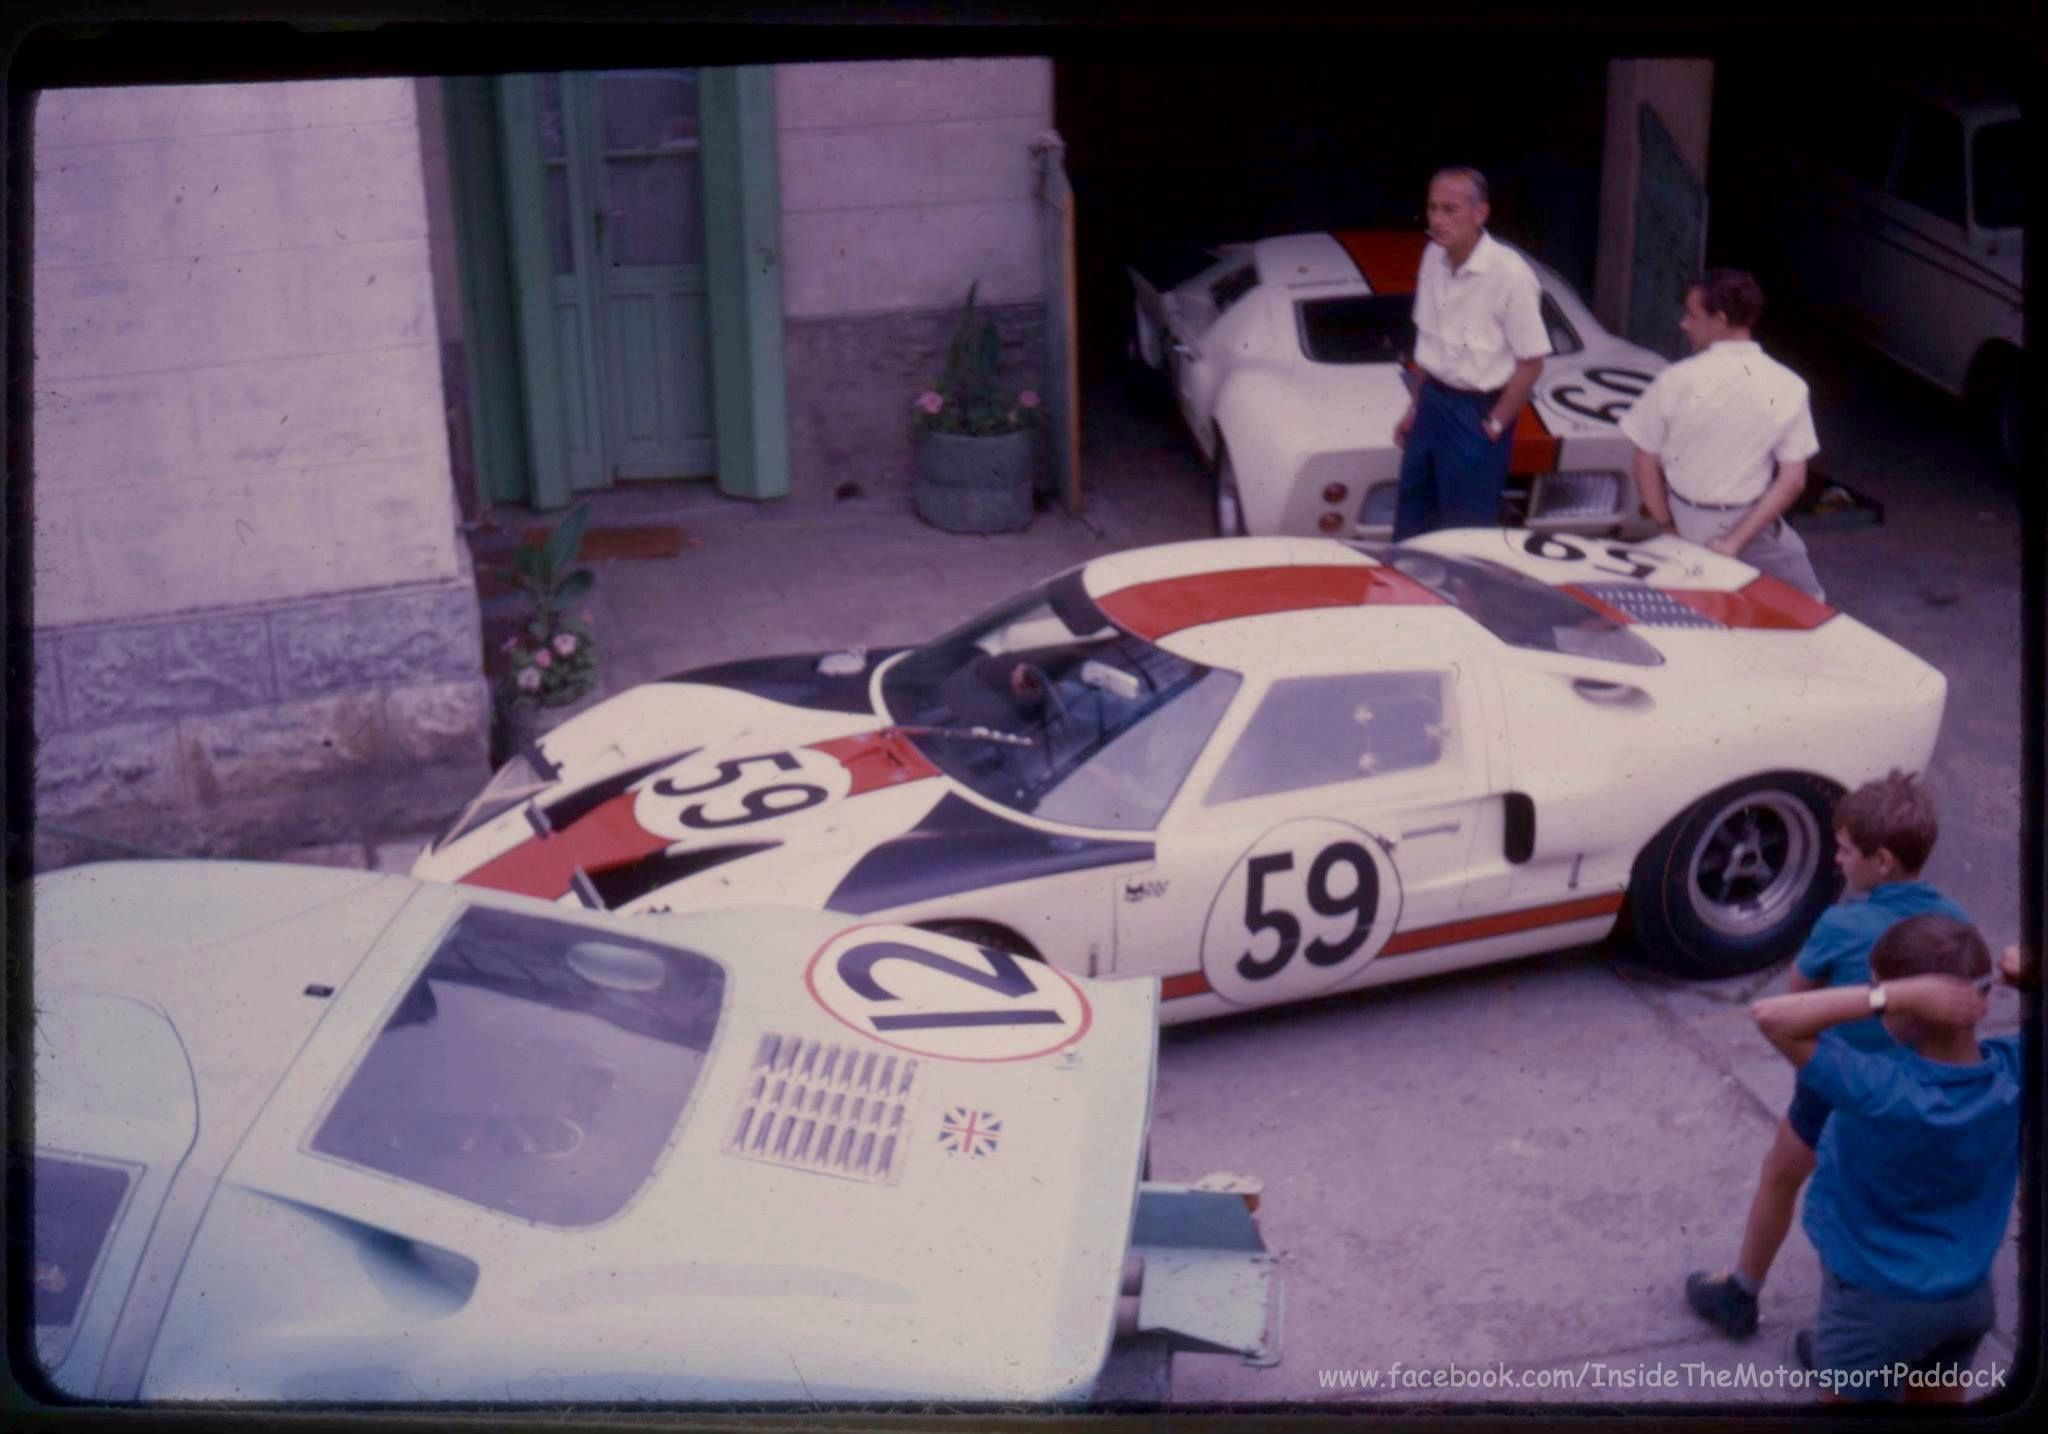 1966 Le Mans 24h Hotel De France Comstock Racing Team F R English Ltd With The Ford Gt40 1017 Nr12 Rindt Ireland Dnf Essex Wir Ford Gt40 Gt40 Ford Gt